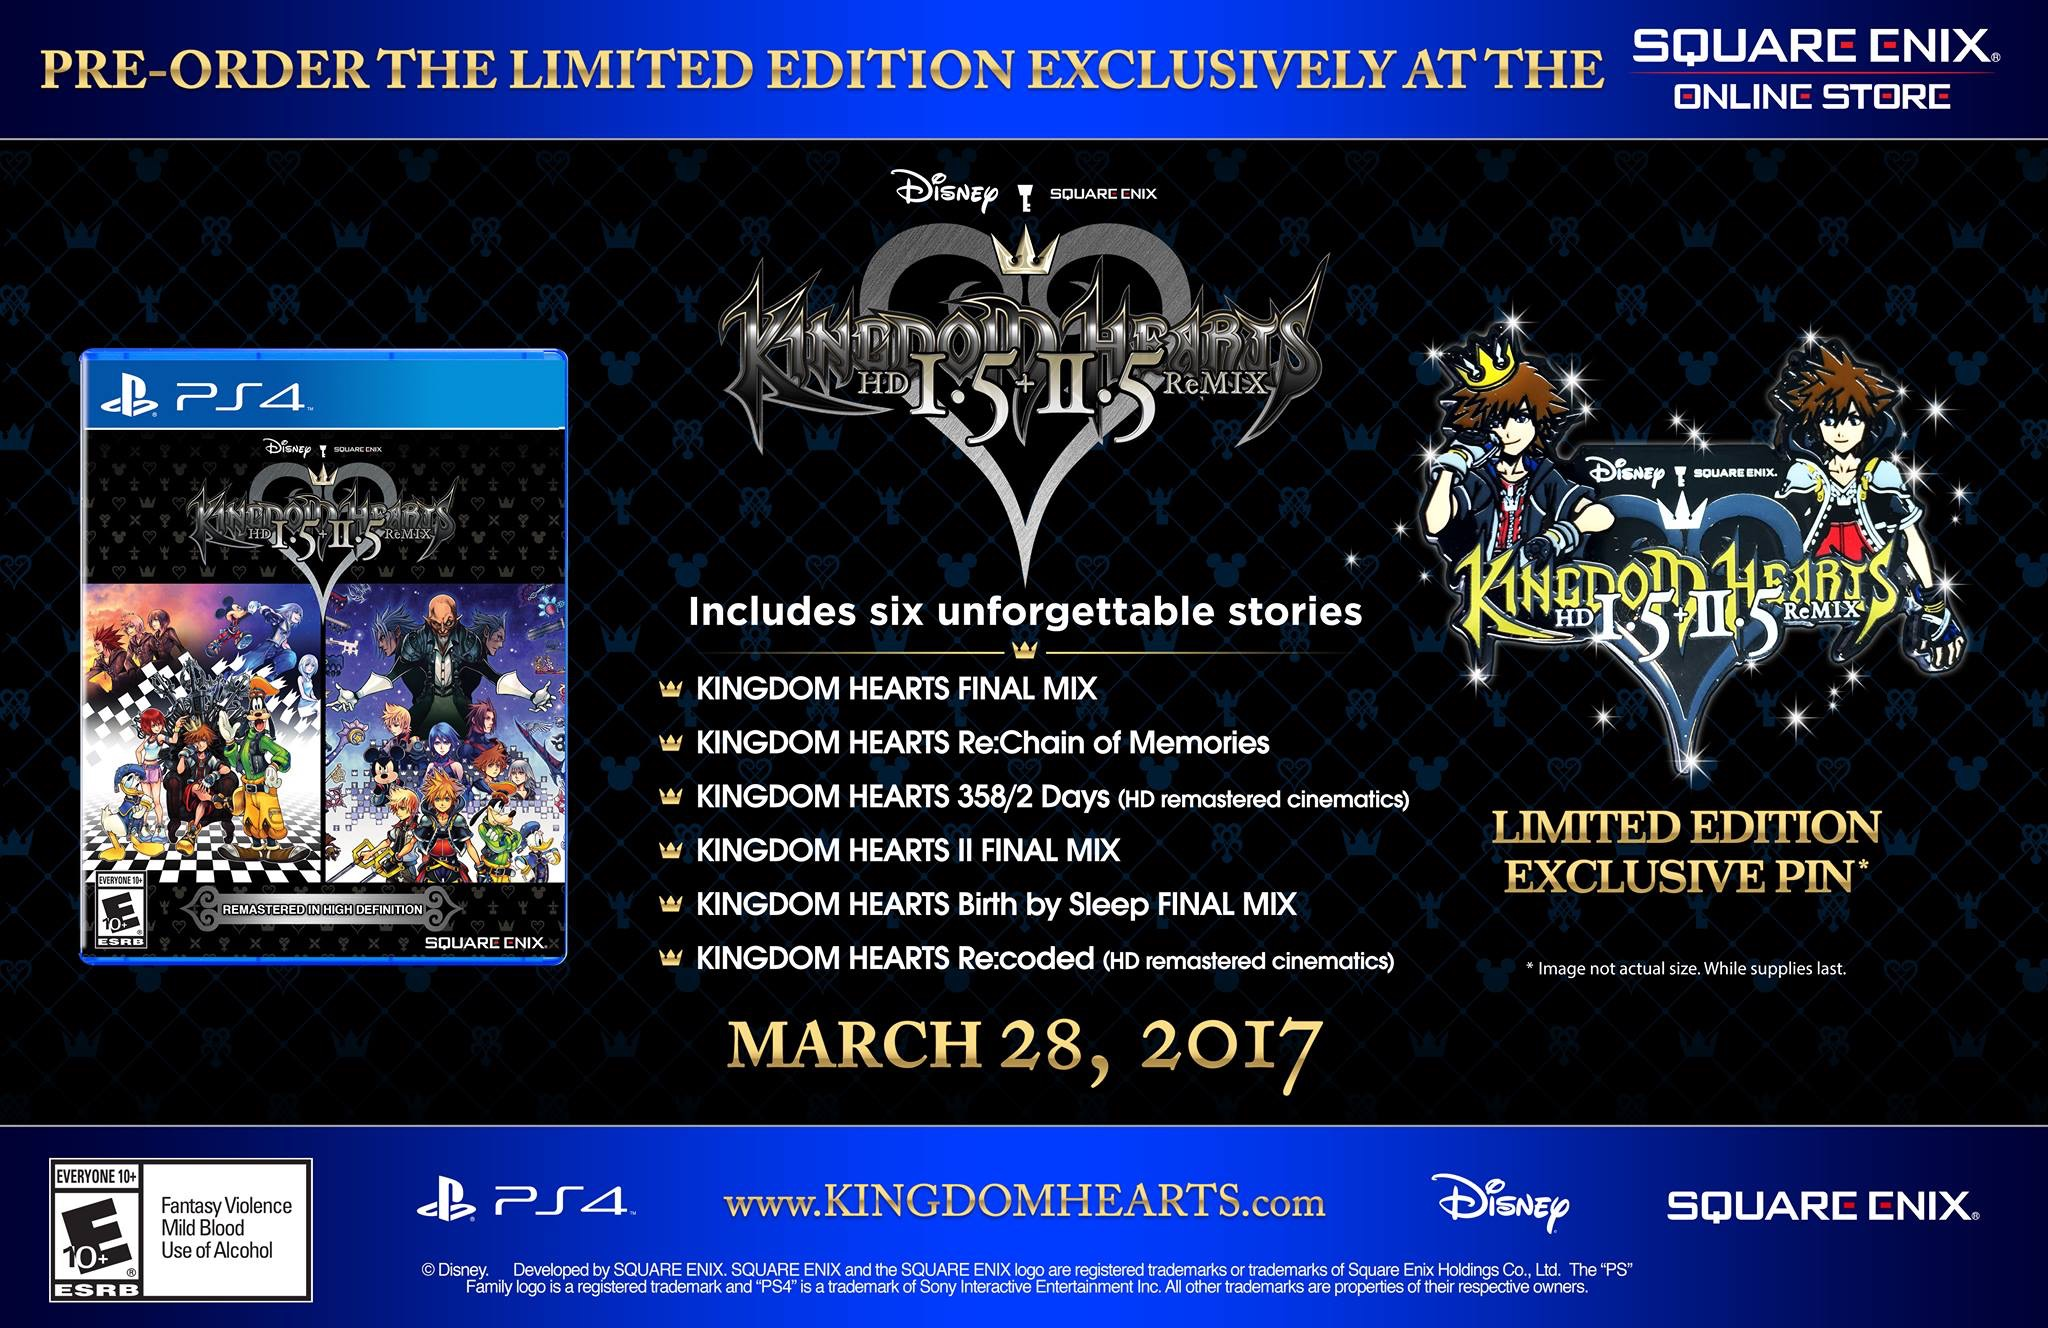 Kingdom Hearts 1.5 & 2.5 Pin Pre-Order Bonus Announced